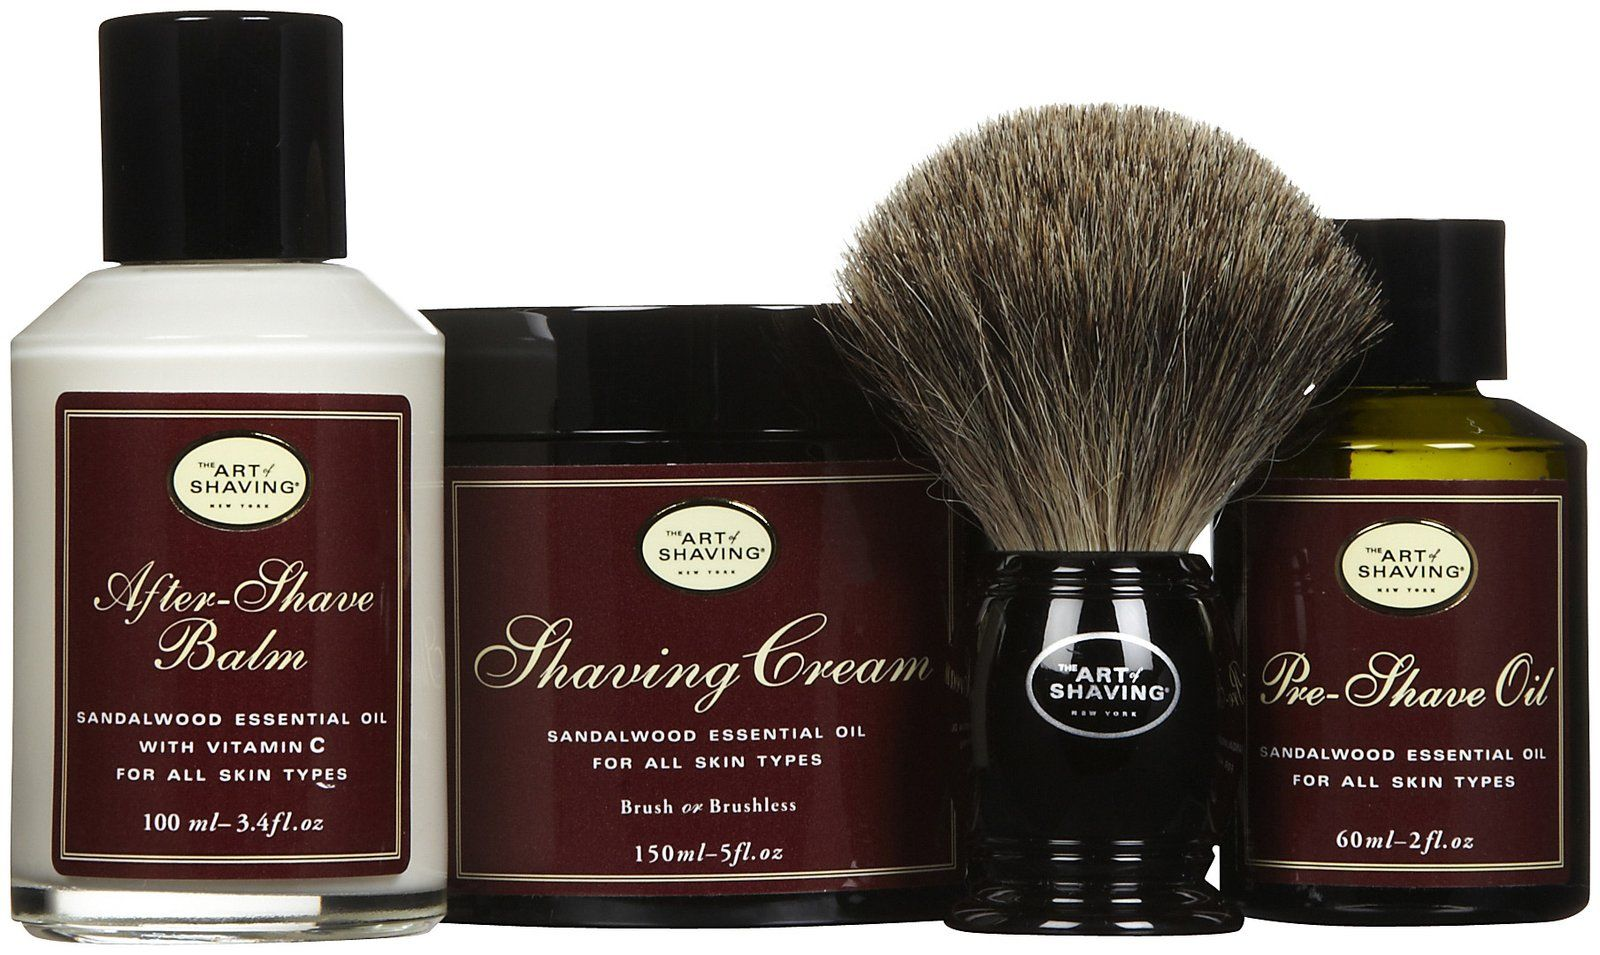 25 Gifts For Guys To Step Up Their Grooming Game Grooming Gifts Shaving Balm The Art Of Shaving